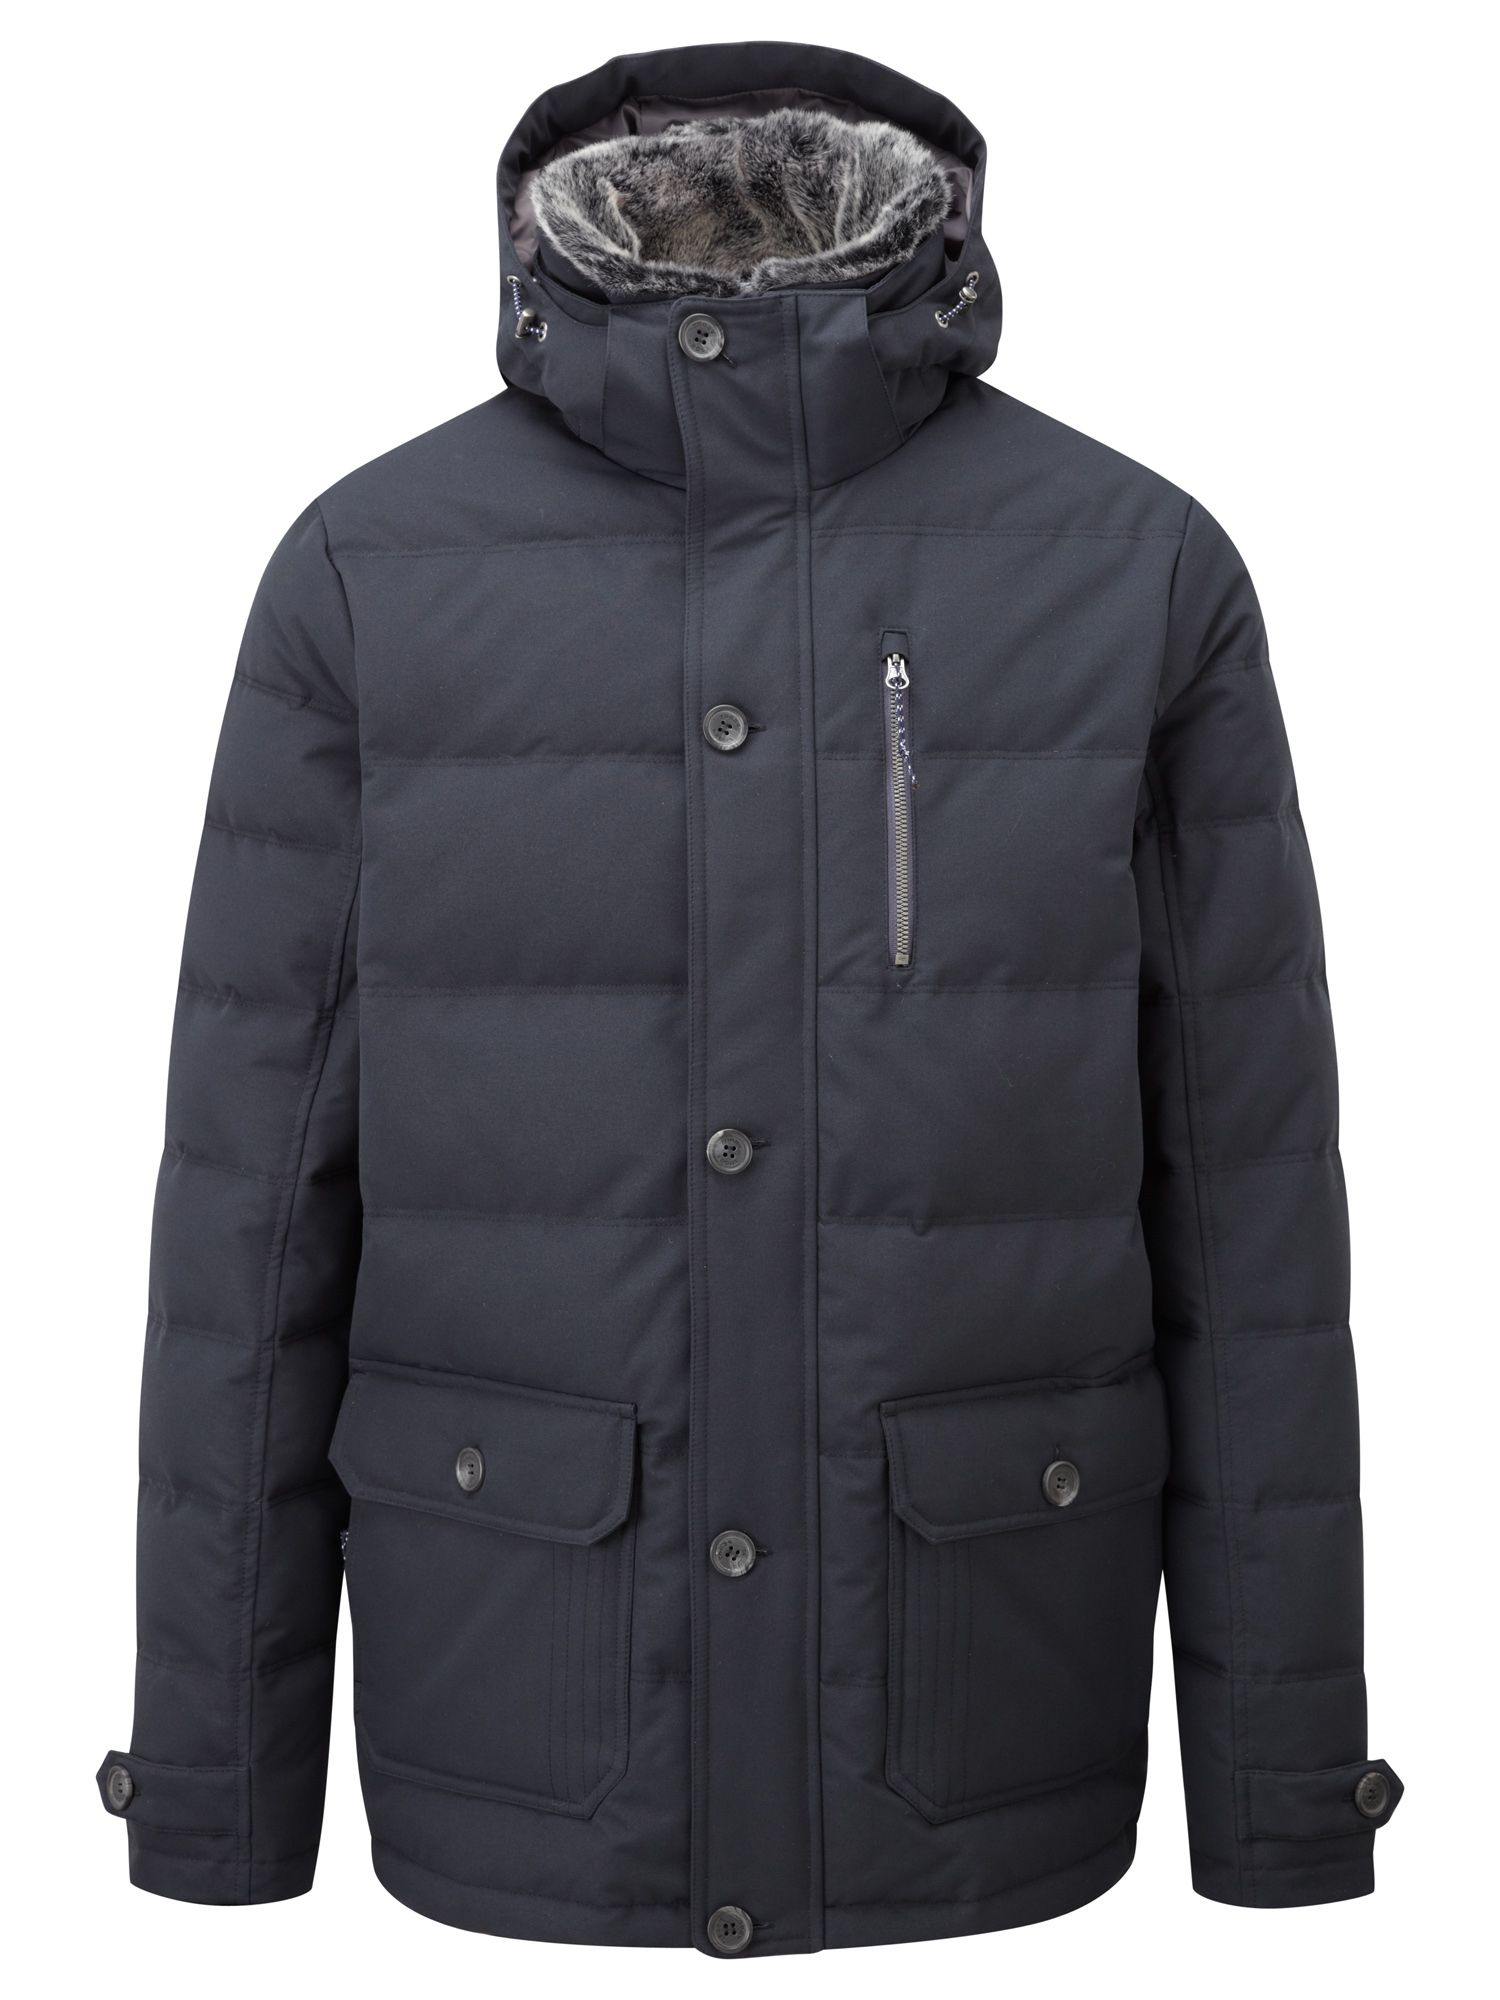 Shop the best selection of men's down jackets at newuz.tk, where you'll find premium outdoor gear and clothing and experts to guide you through selection.